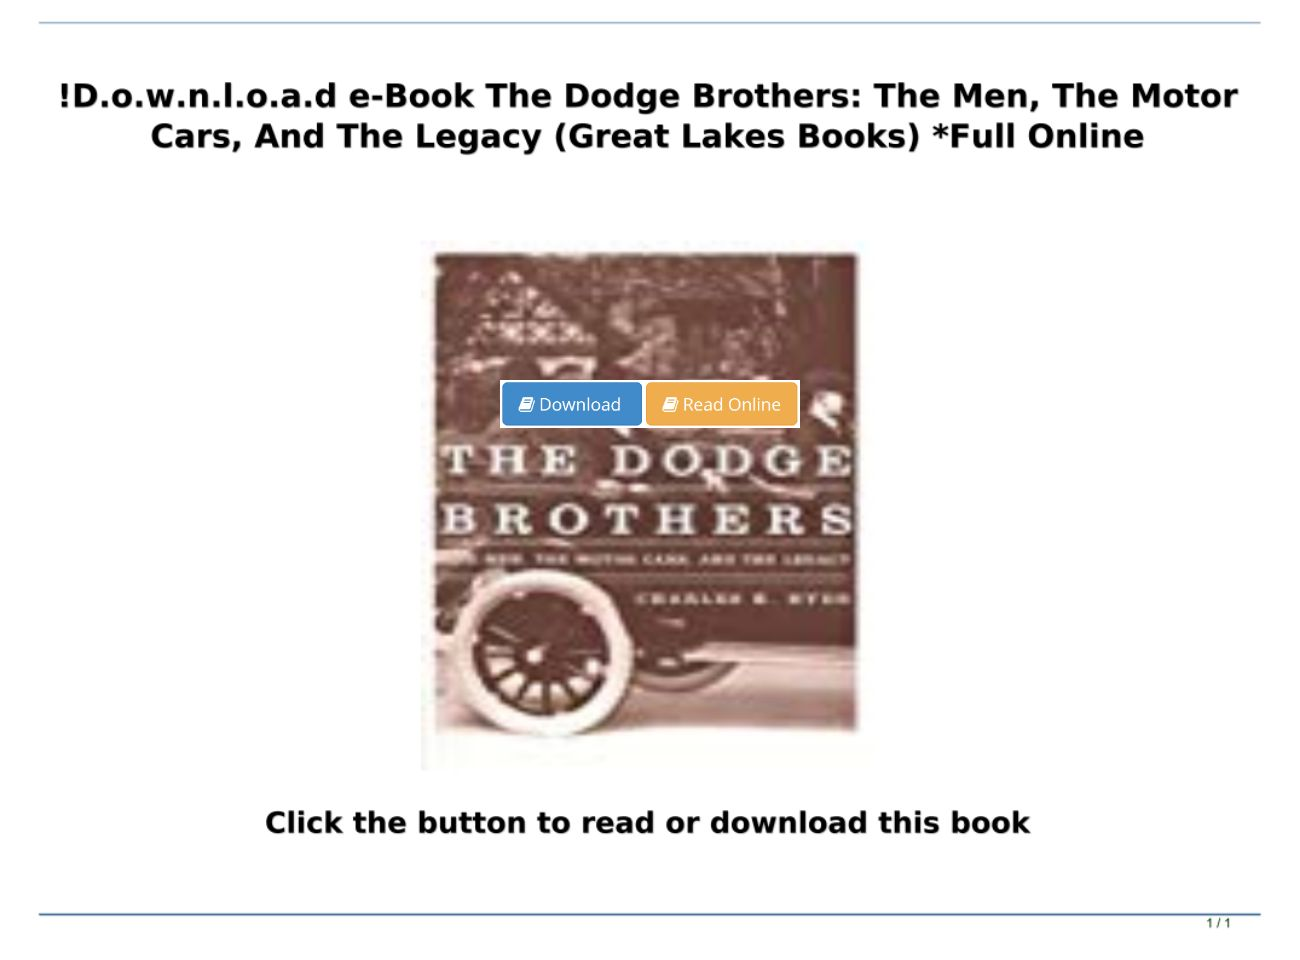 The Men The Dodge Brothers the Motor Cars and the Legacy